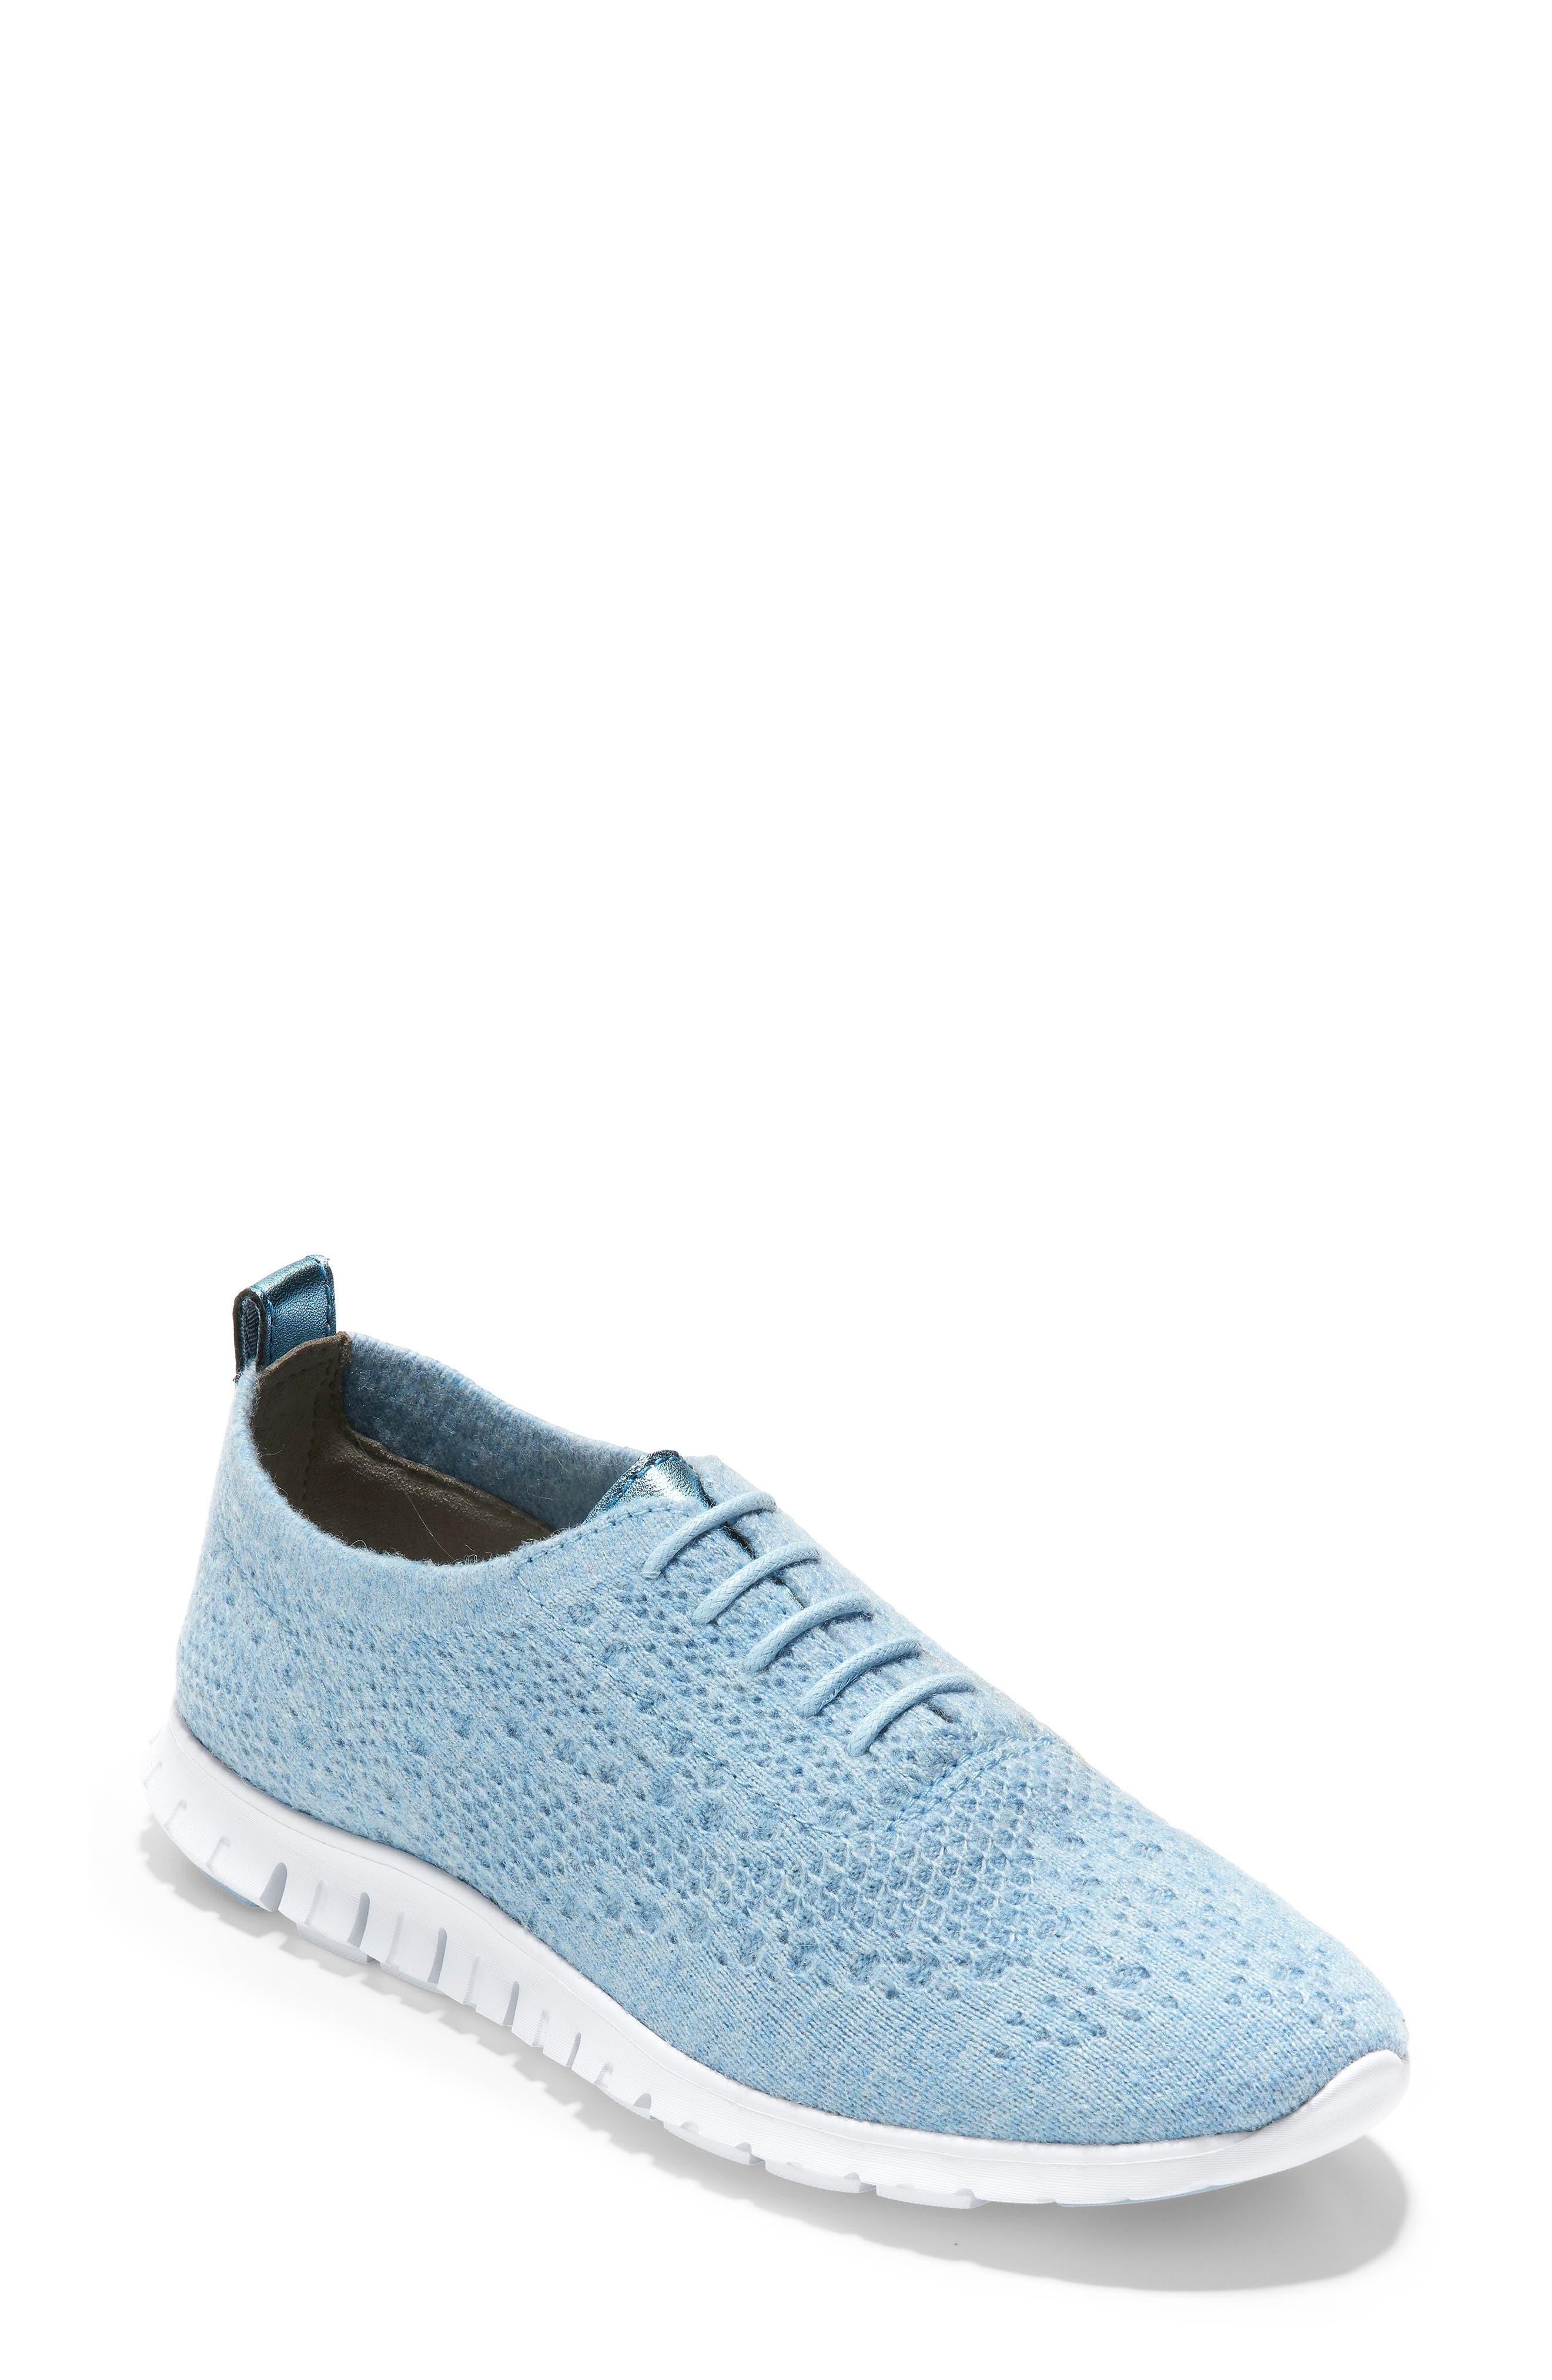 COLE HAAN,                             ZeroGrand Stitchlite Wool Flat,                             Main thumbnail 1, color,                             CHAMBRAY BLUE FABRIC